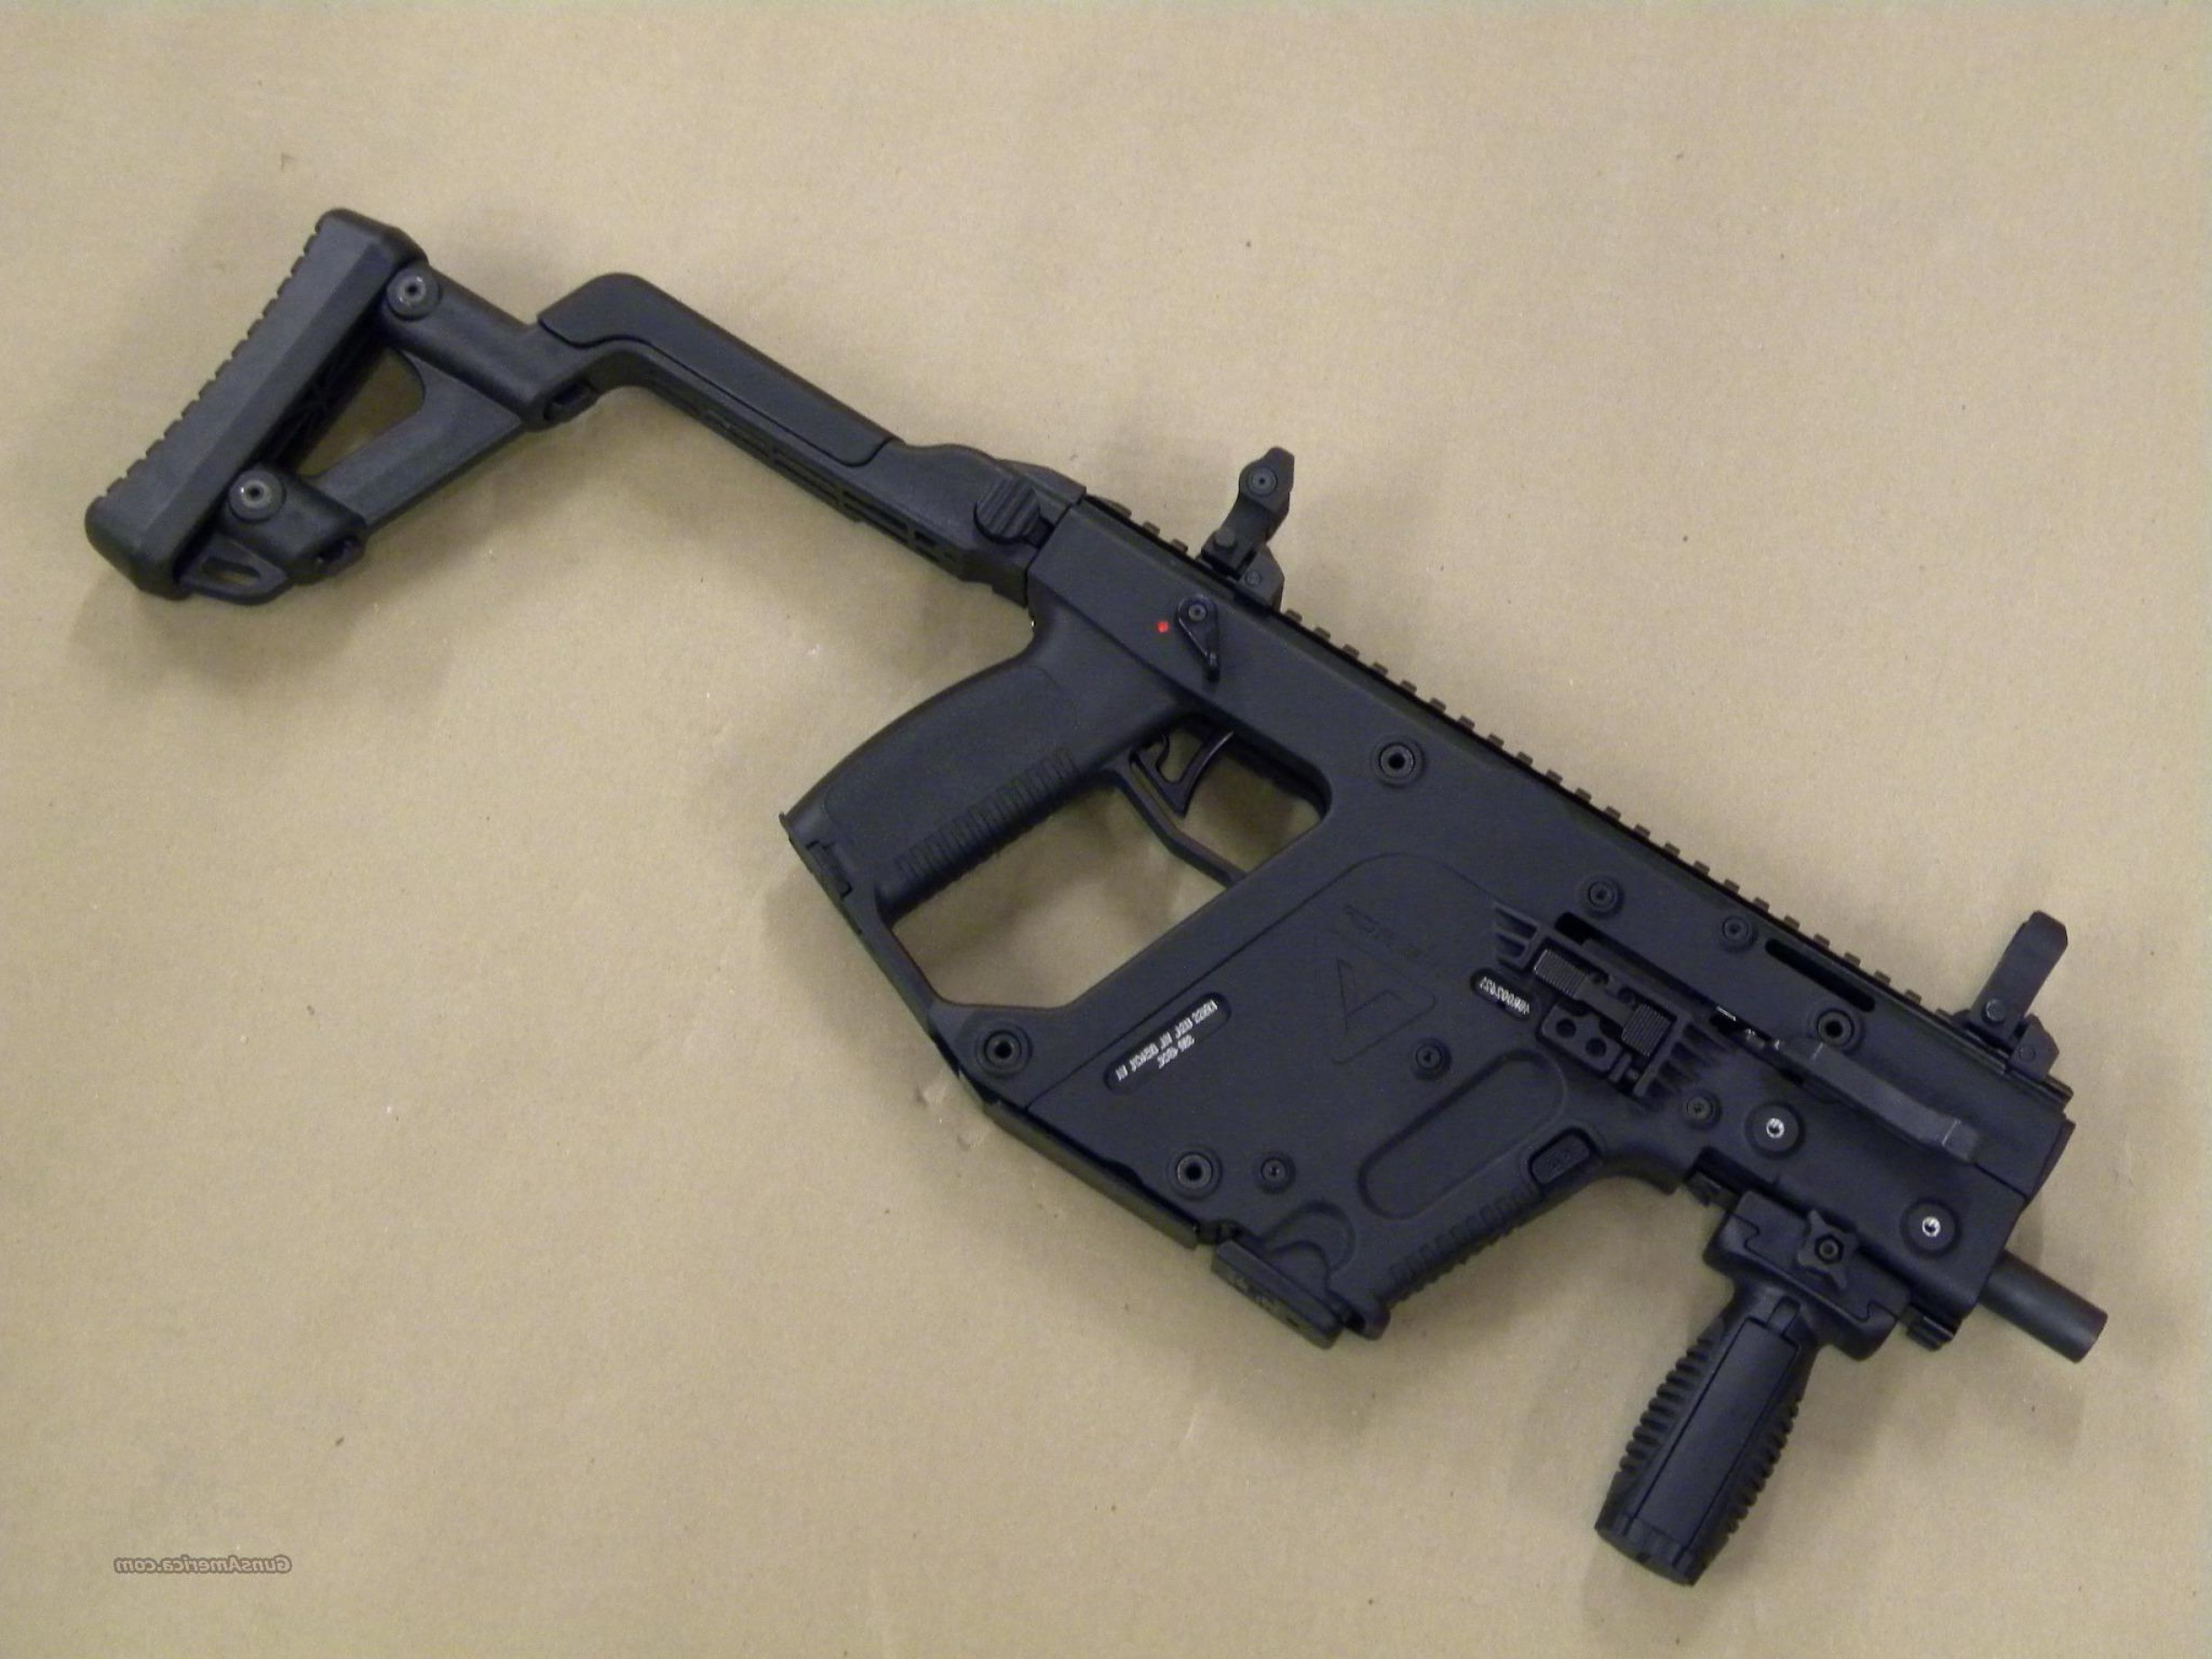 Kriss Vector Handgun: Kriss Vector Sbr Semi Auto Acp